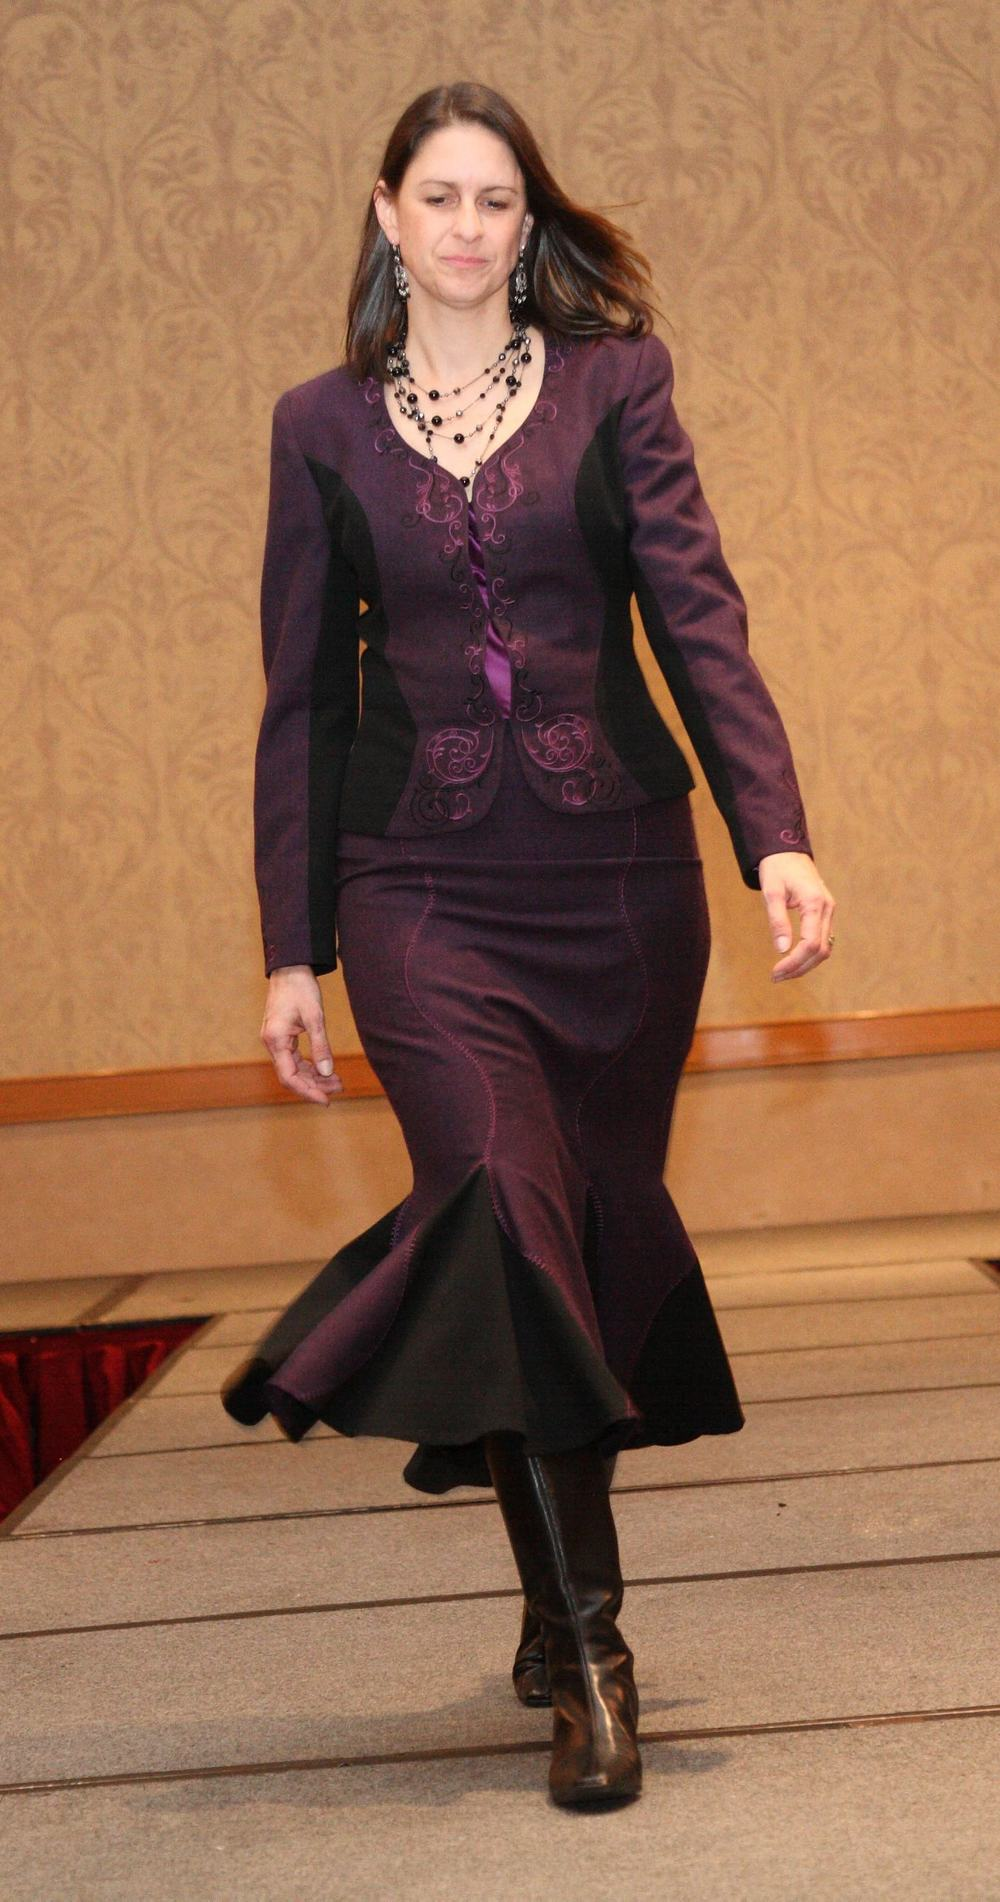 Juliette struts her stuff on the runway wearing a suit she designed in the 2010 Threads Magazine Challenge.